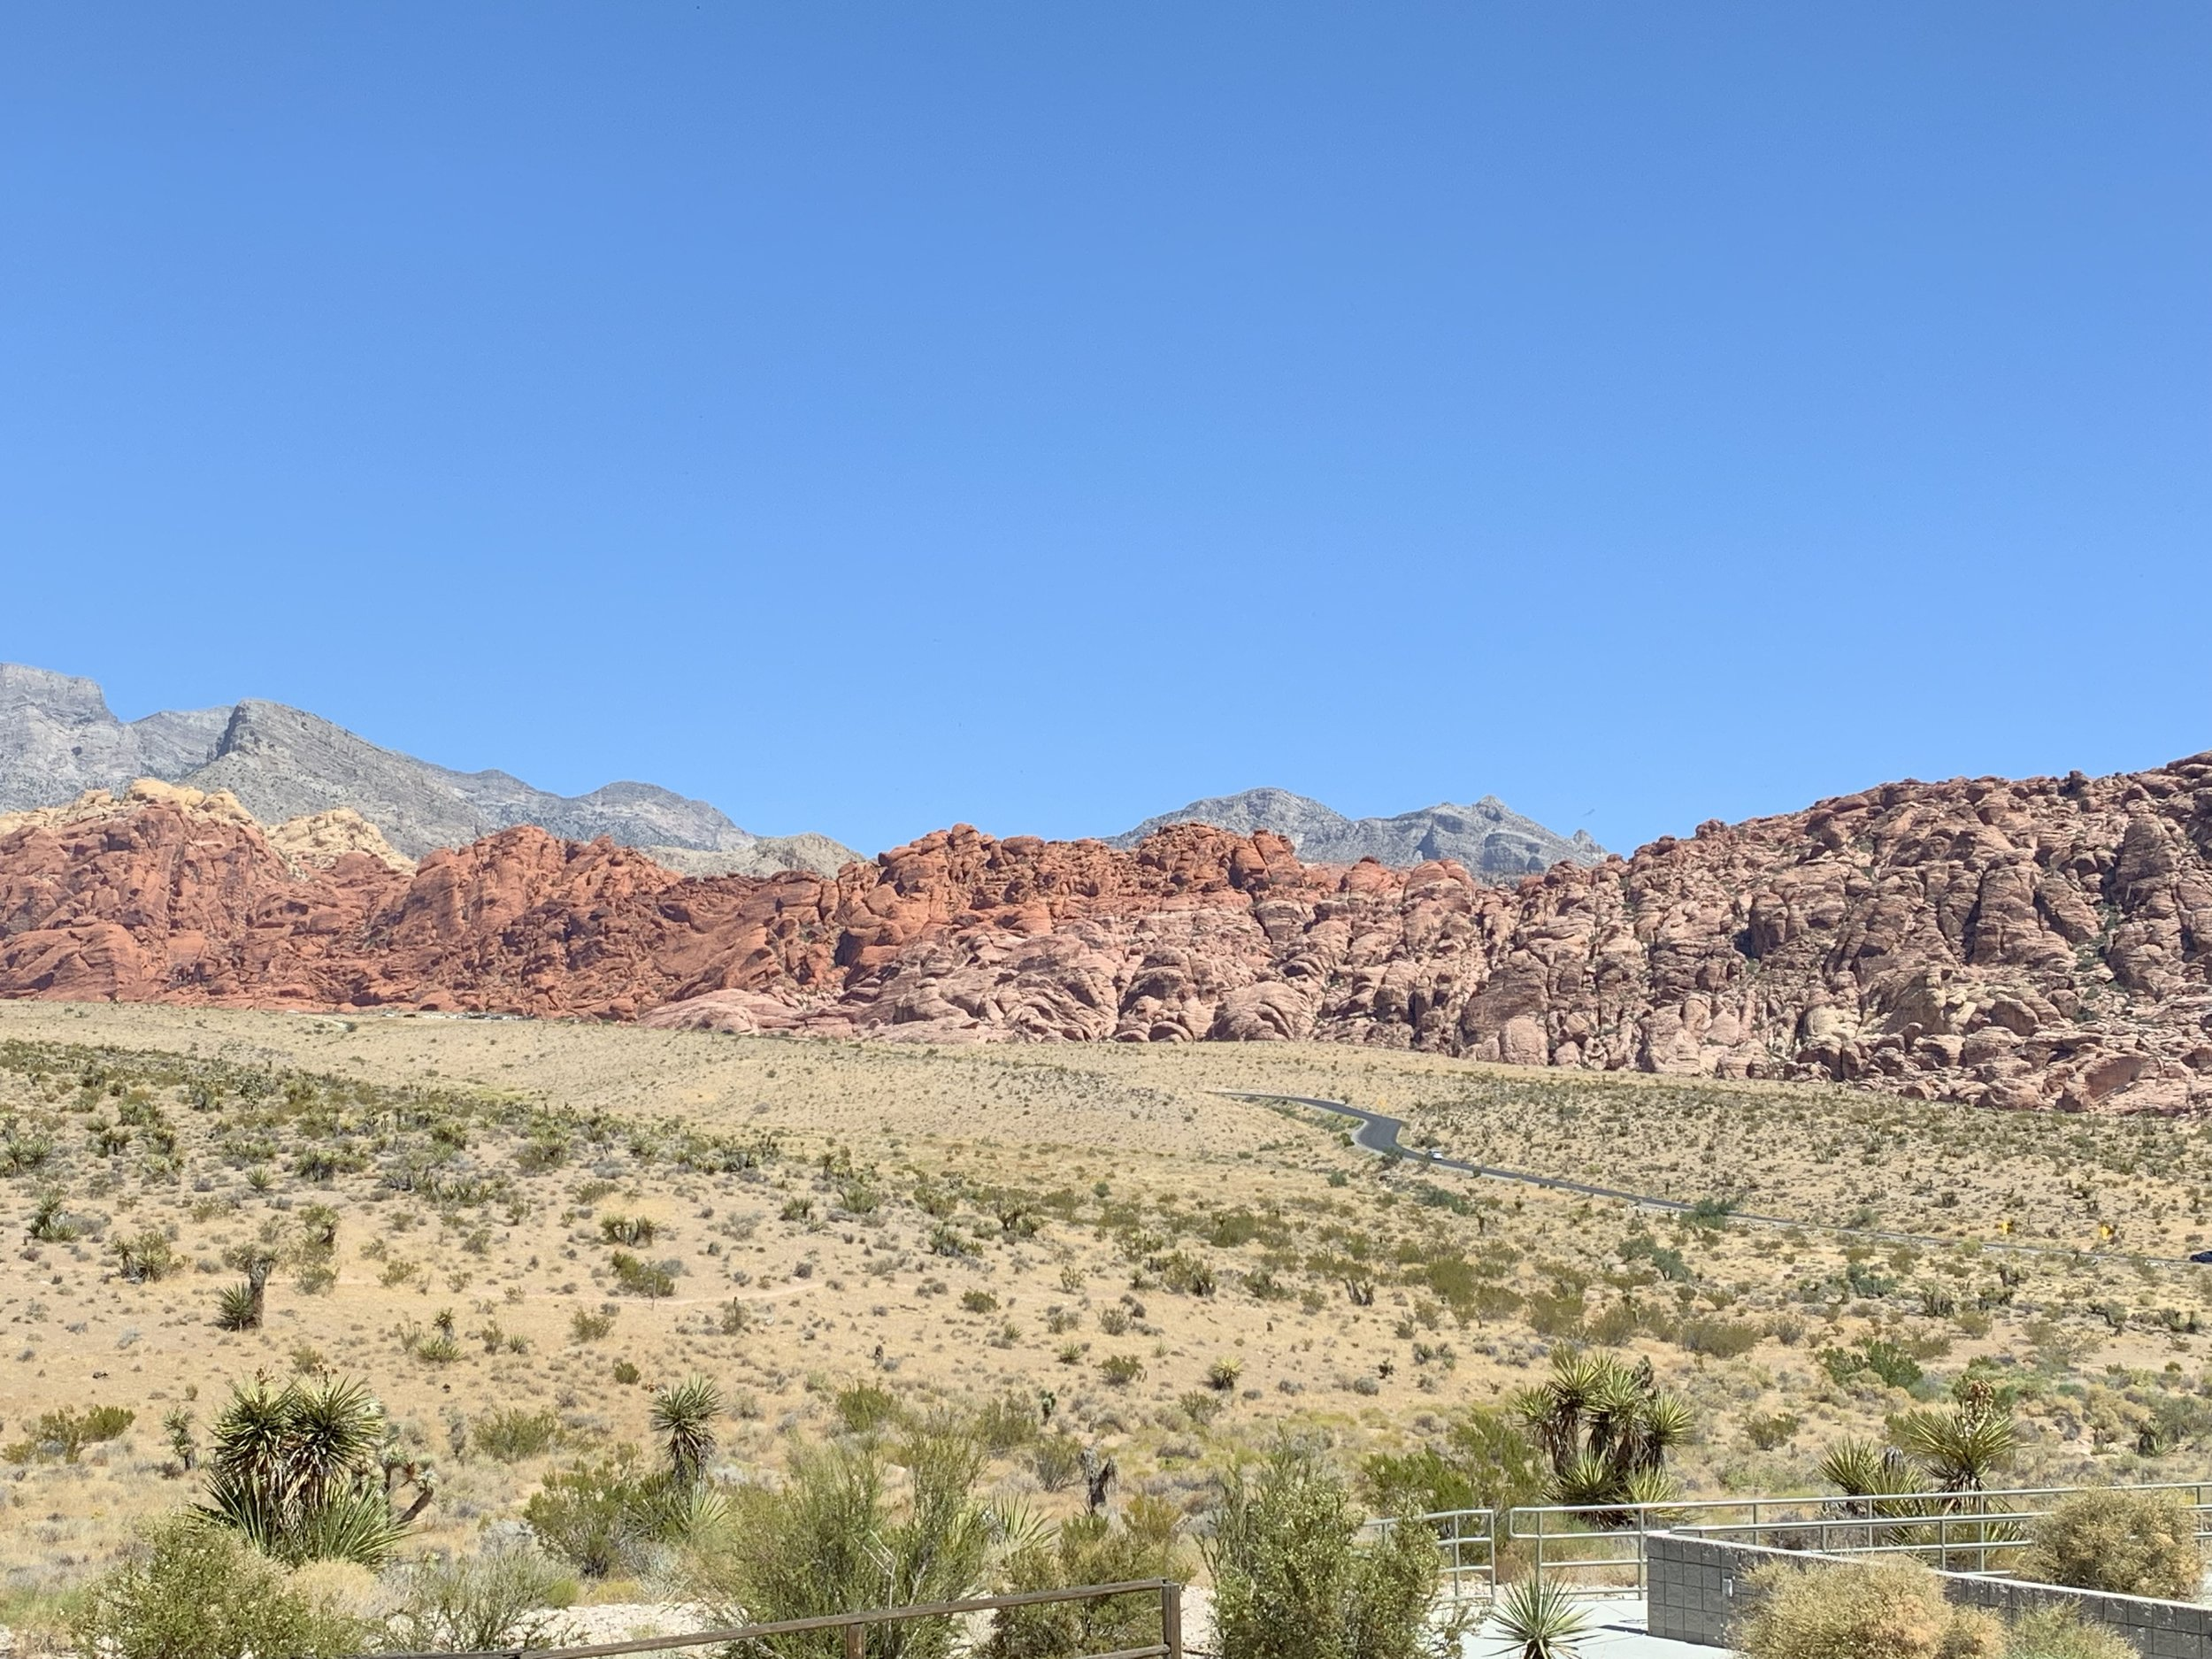 Red Rock Canyon. Another kind of vast expanse.